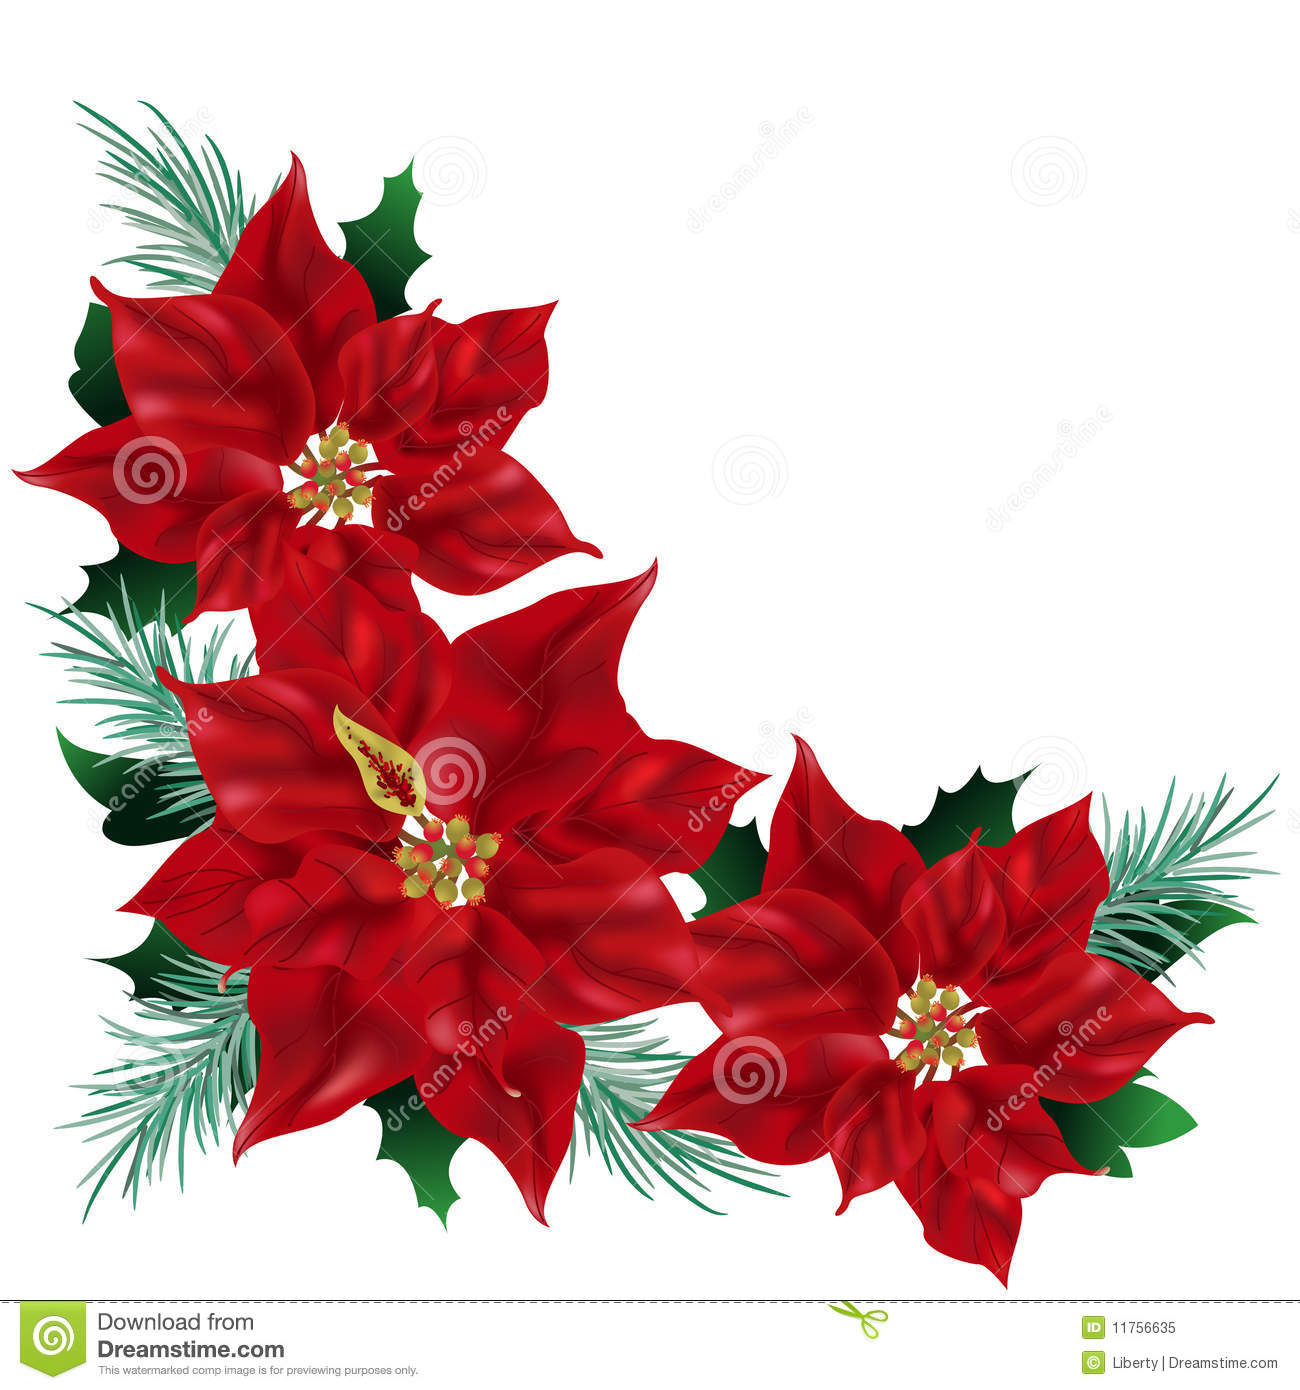 Christmas Poinsettia Clip Art Stock Photos, Images, & Pictures ...